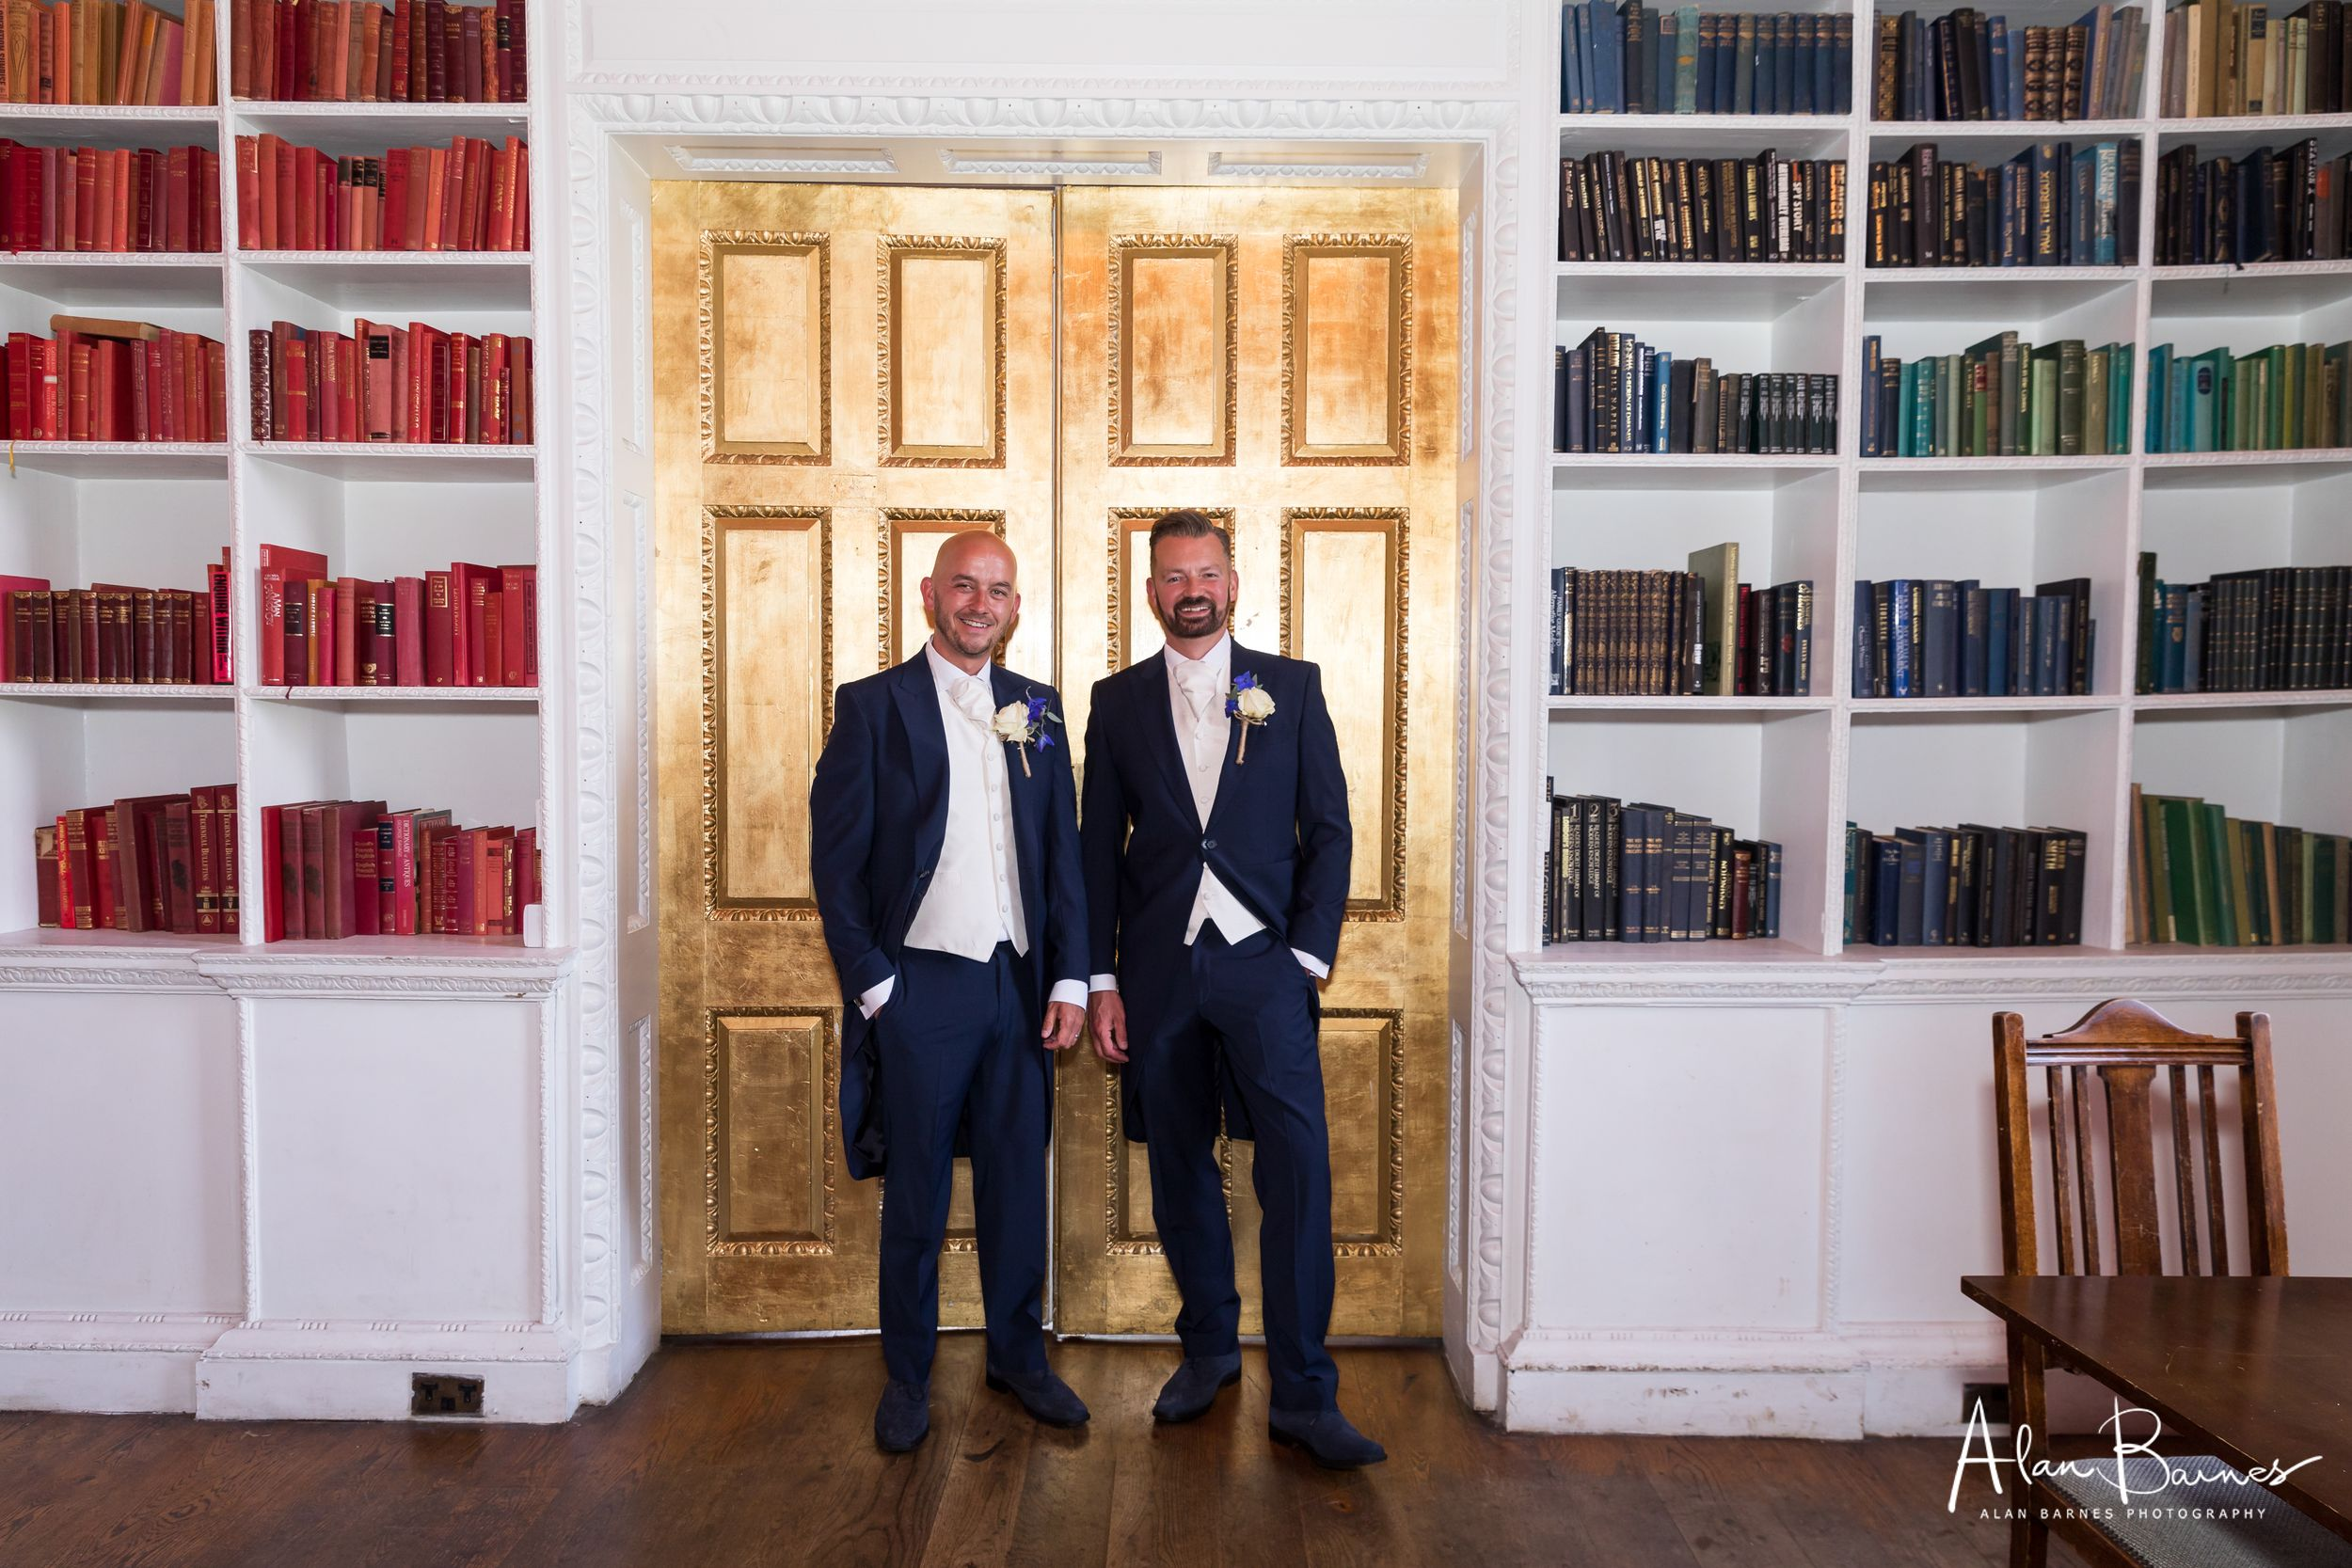 Phil and Paul wedding portrait in the library